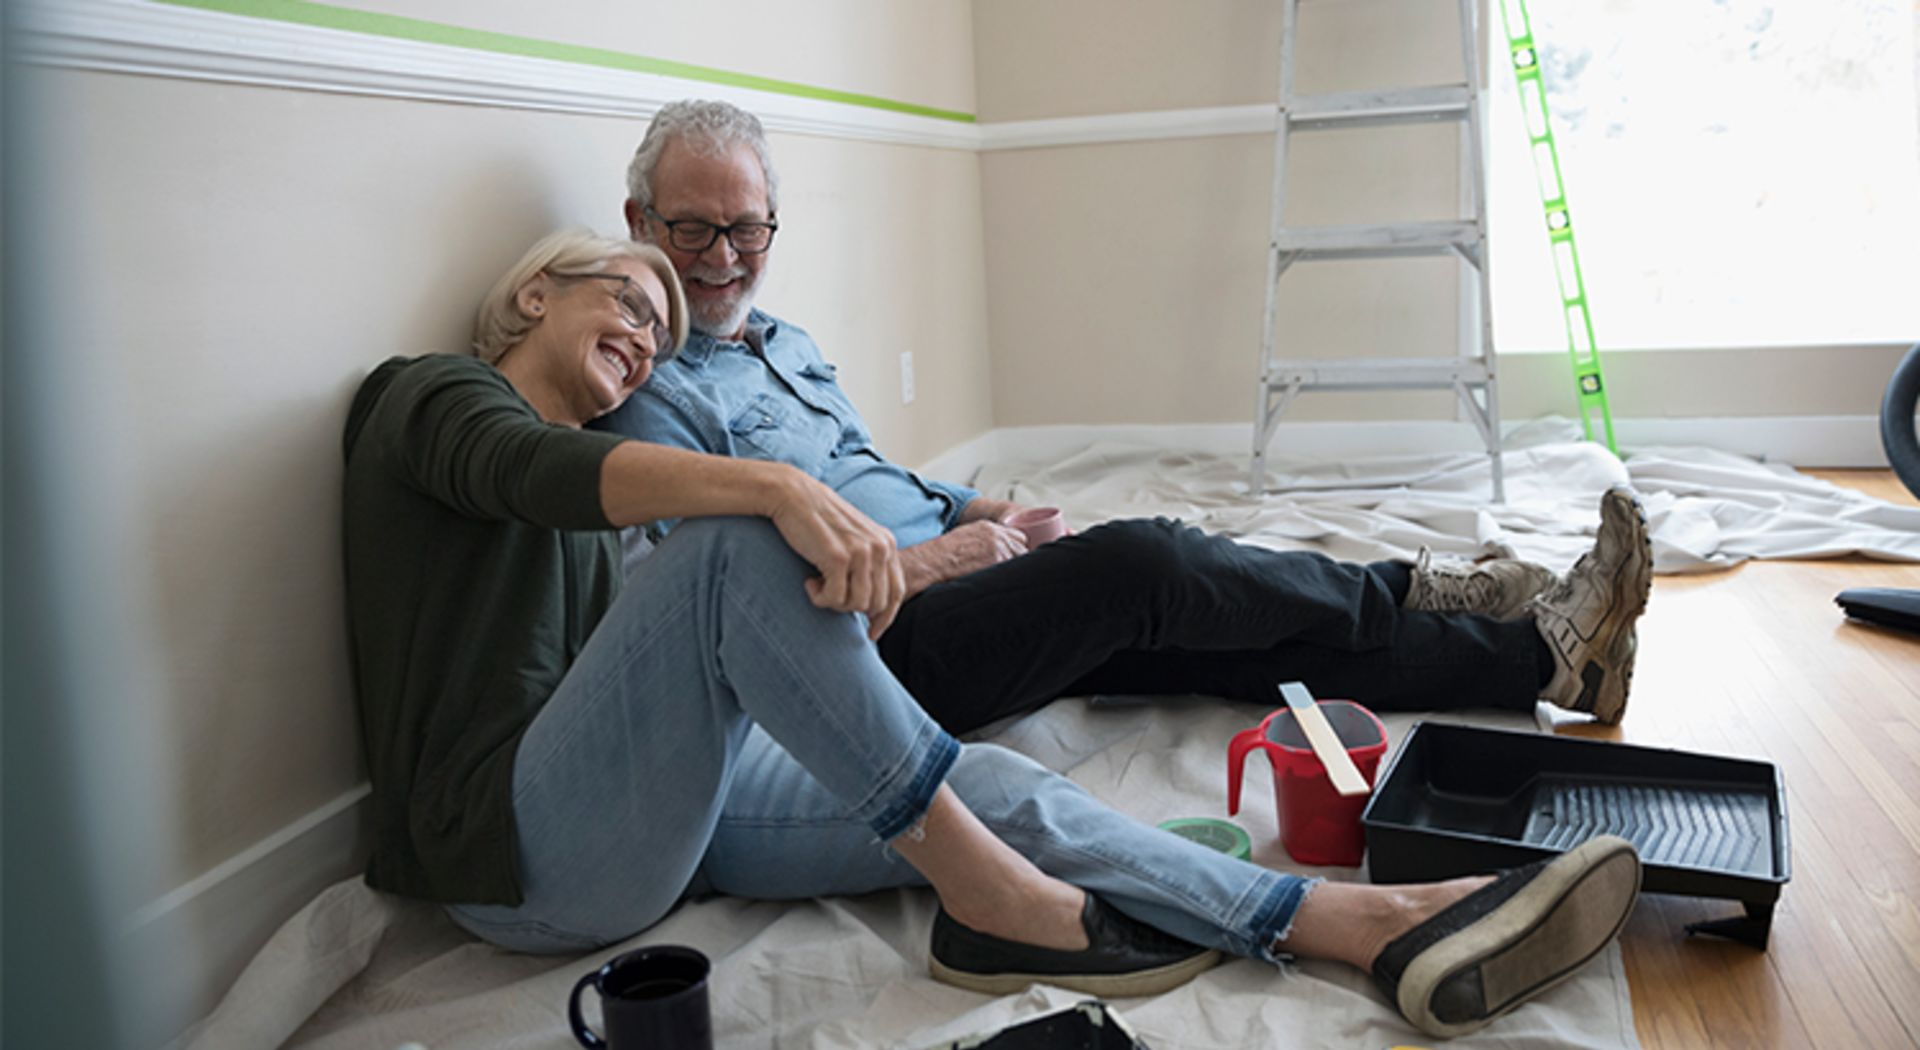 Are Owners Renovating For Self or Sale?